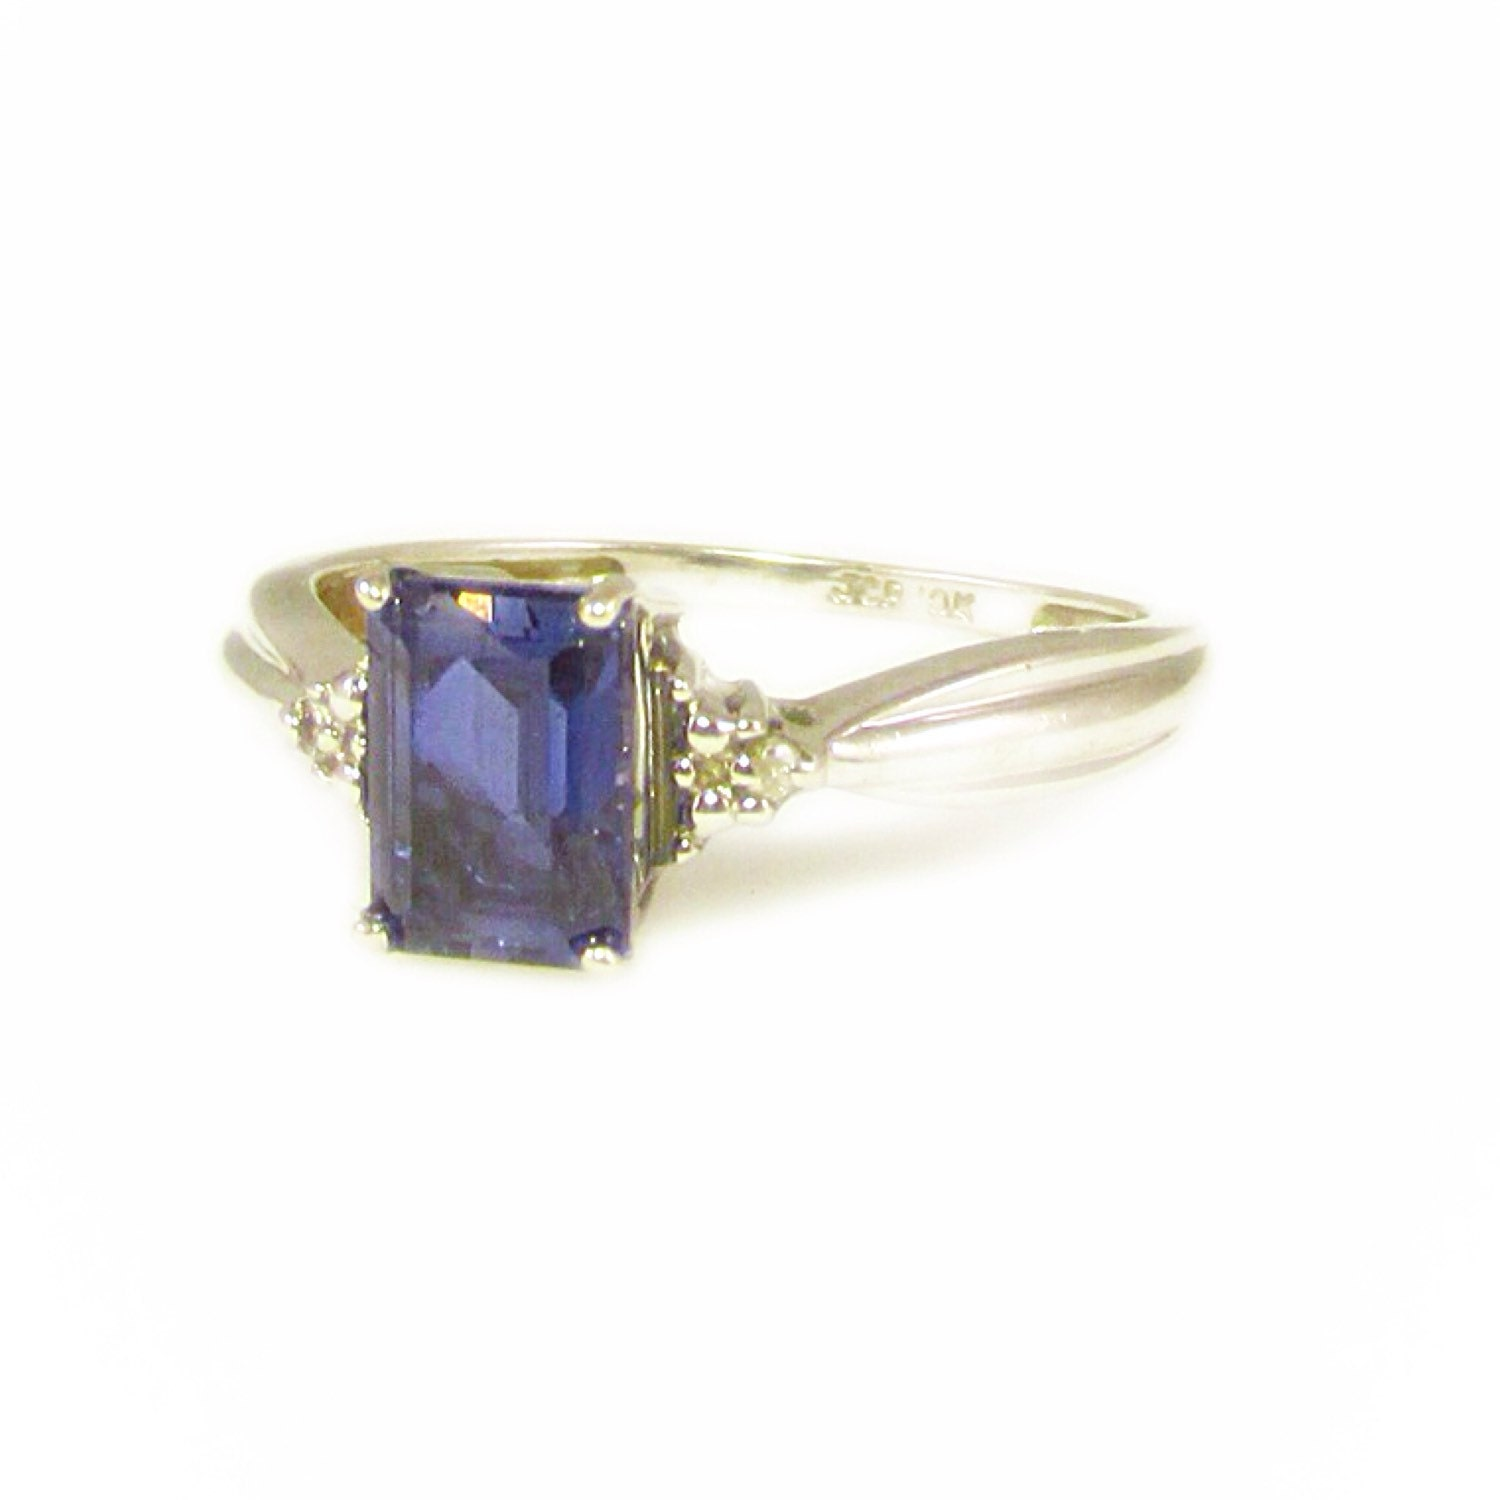 10k white gold and blue sapphire ring with